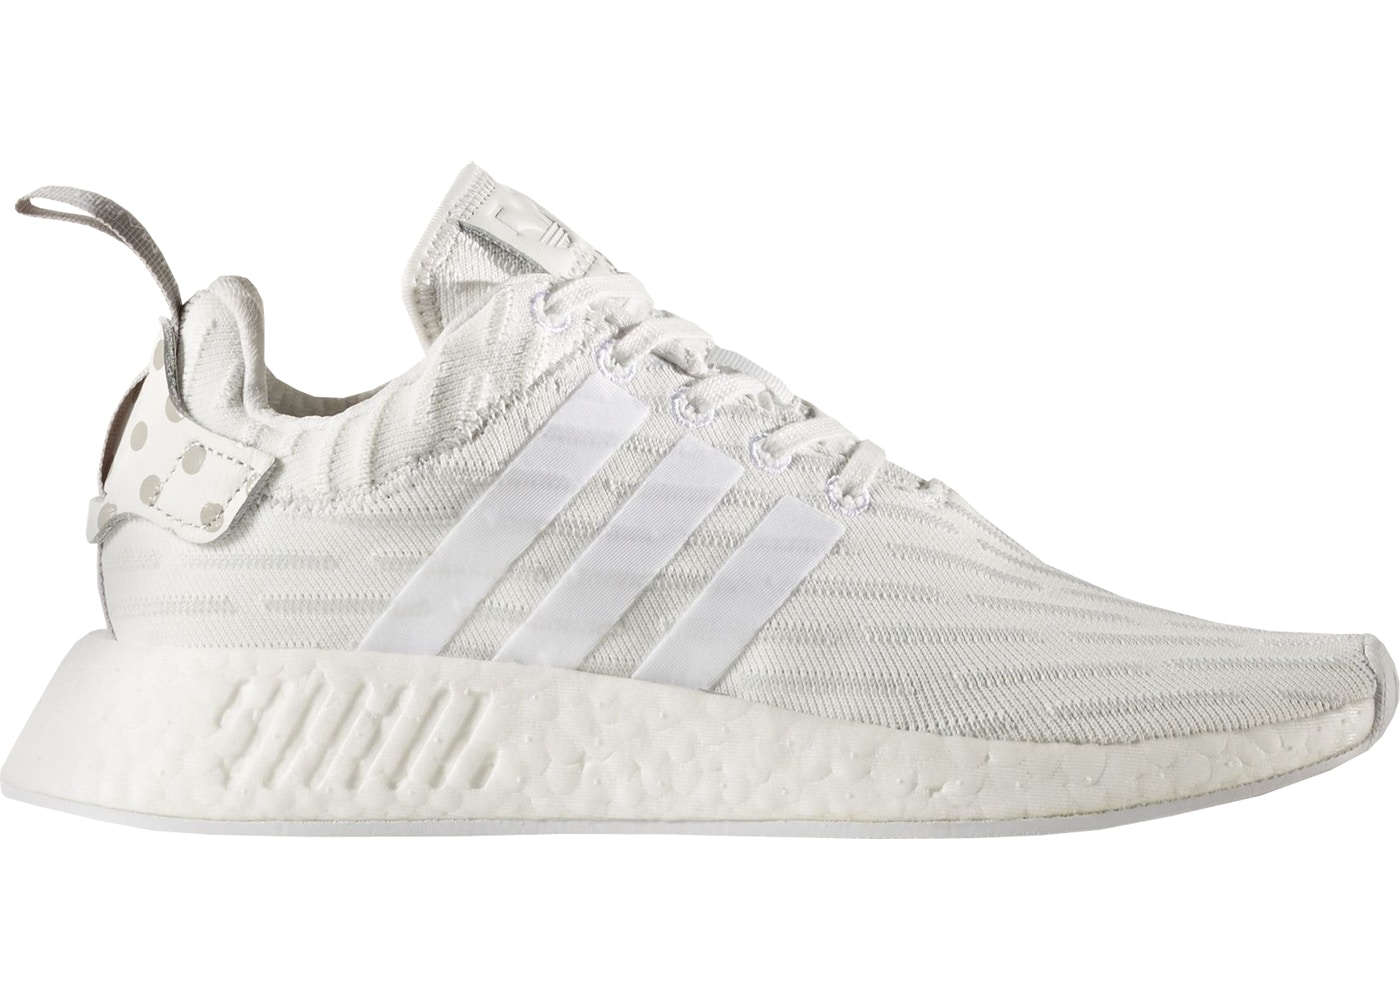 new concept 7bc82 ec87b Sell. or Ask. Size  7W. View All Bids. adidas NMD R2 Vintage White ...